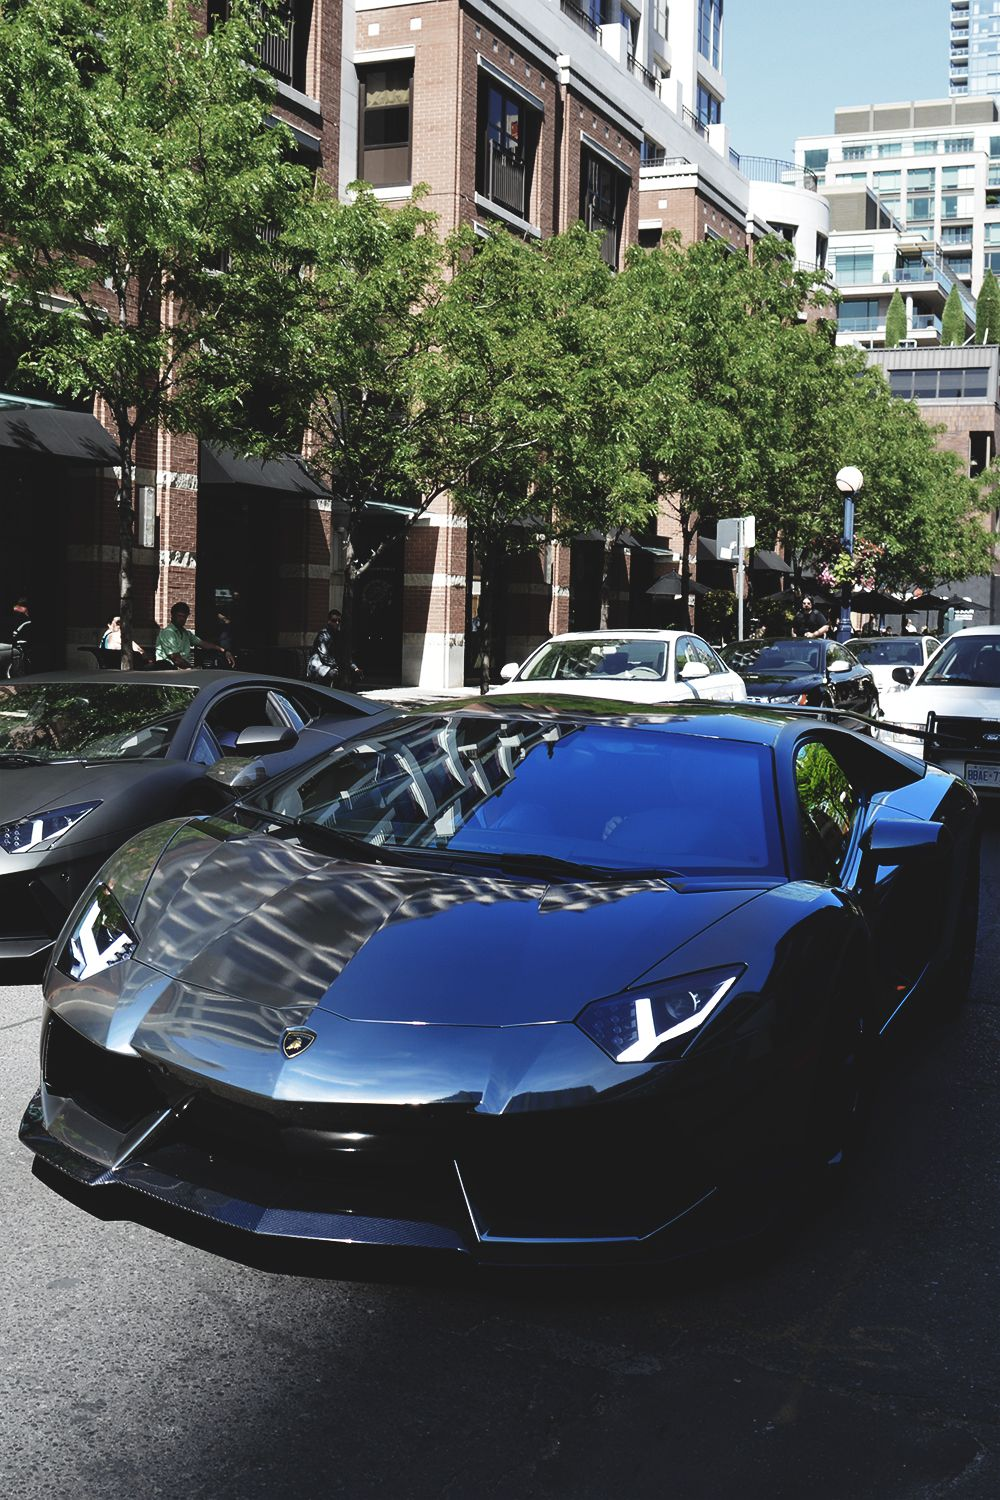 Soulmate24 Com Livealuxurylife Tumblr Com With Images Expensive Cars Cars Amazing Cars